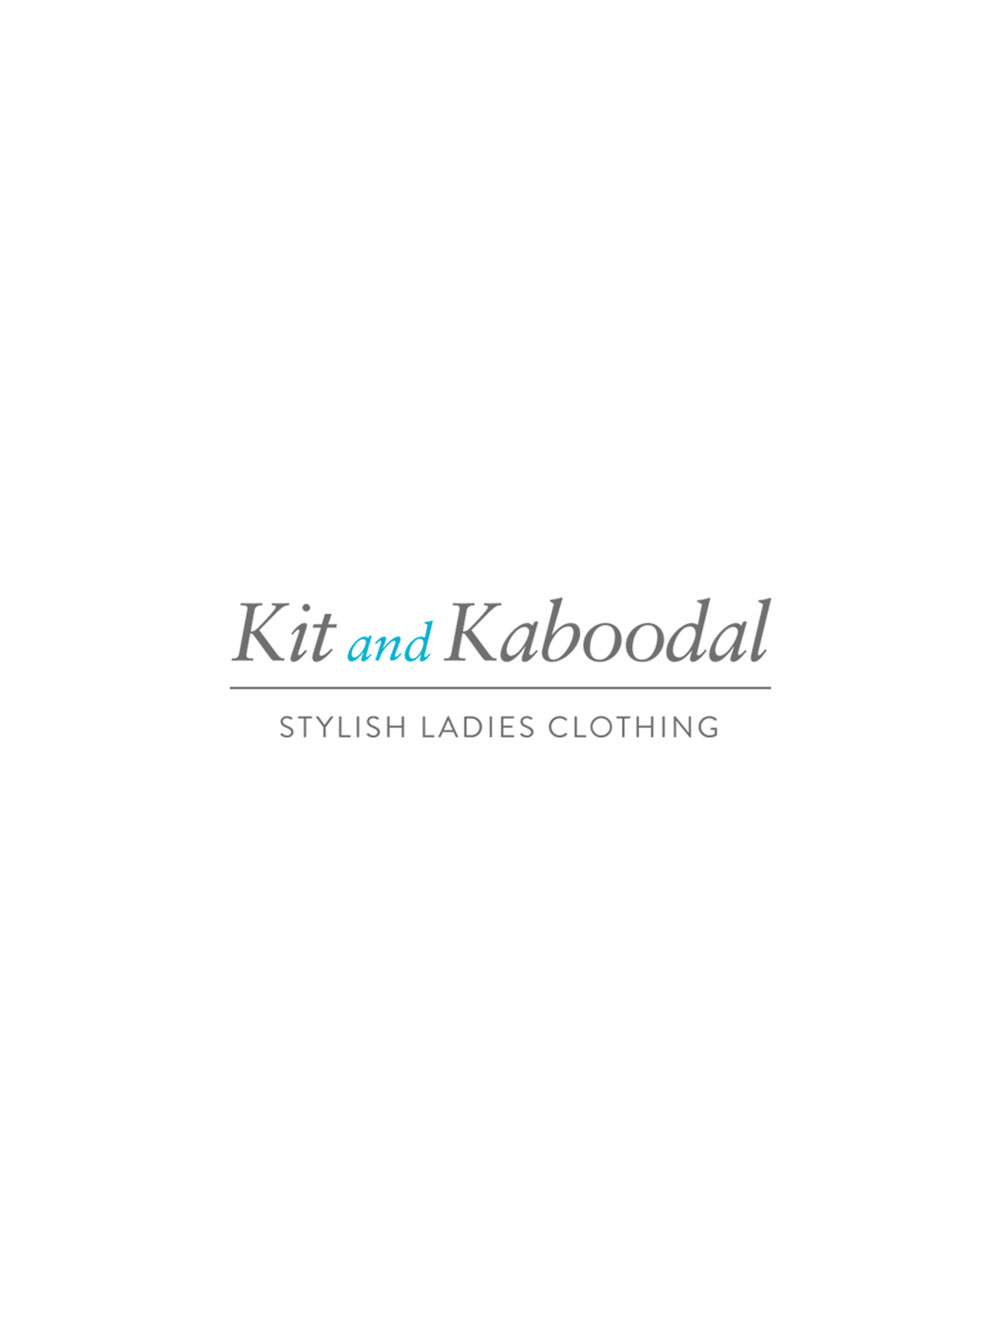 Kit and Kaboodal Ajwain Necklace Silver